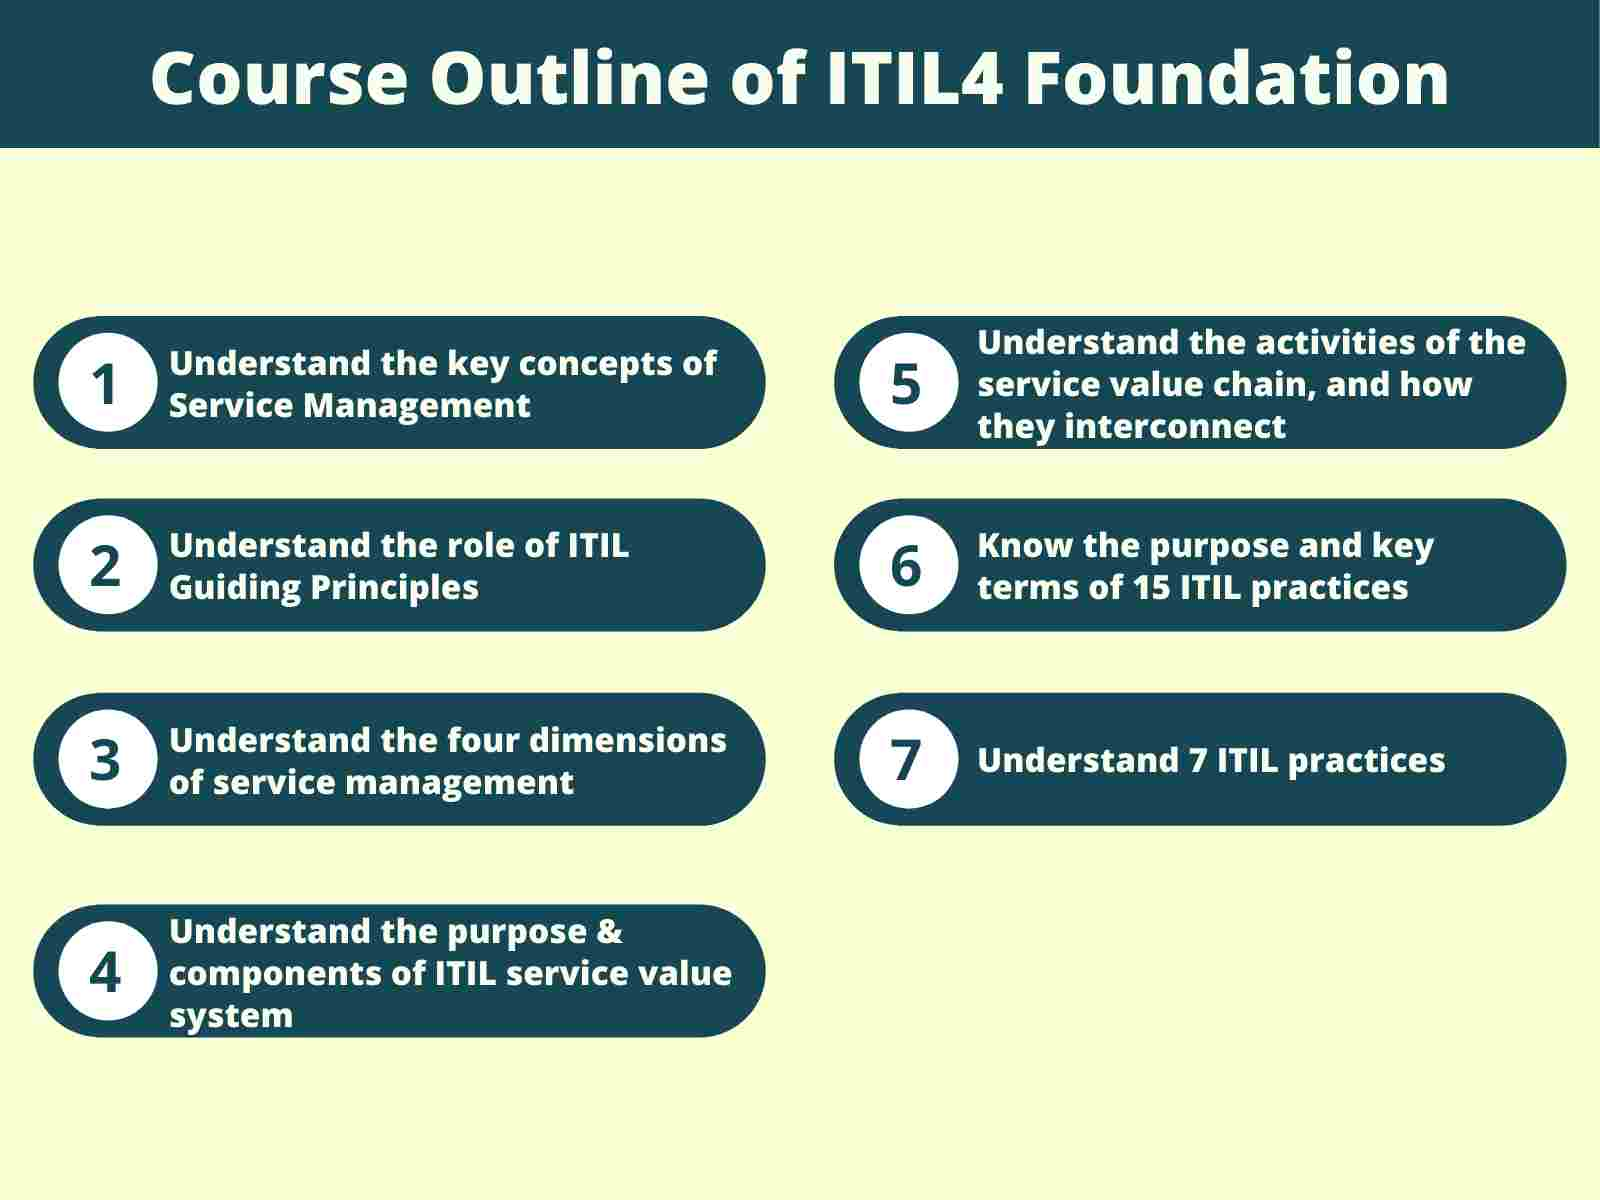 Course Outline of ITIL4 Foundation